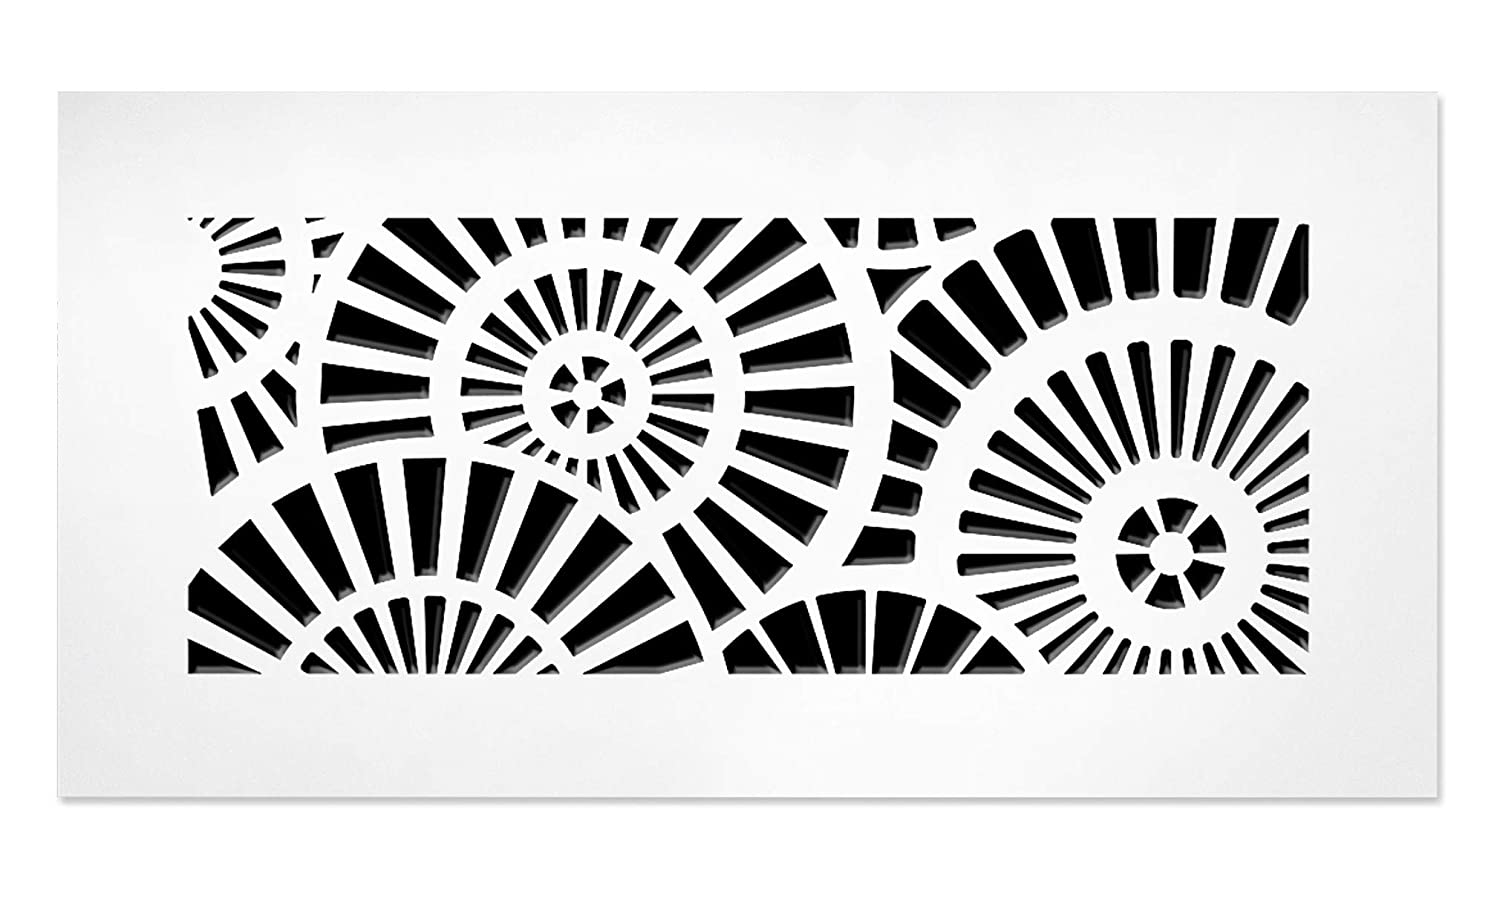 """SABA Air Vent Cover Grille - Acrylic Plexiglass 4"""" x 8"""" Duct Opening (6"""" x 10"""" Overall) White Finish Decorative Register Covers for Walls and Ceilings, Waterwheel"""